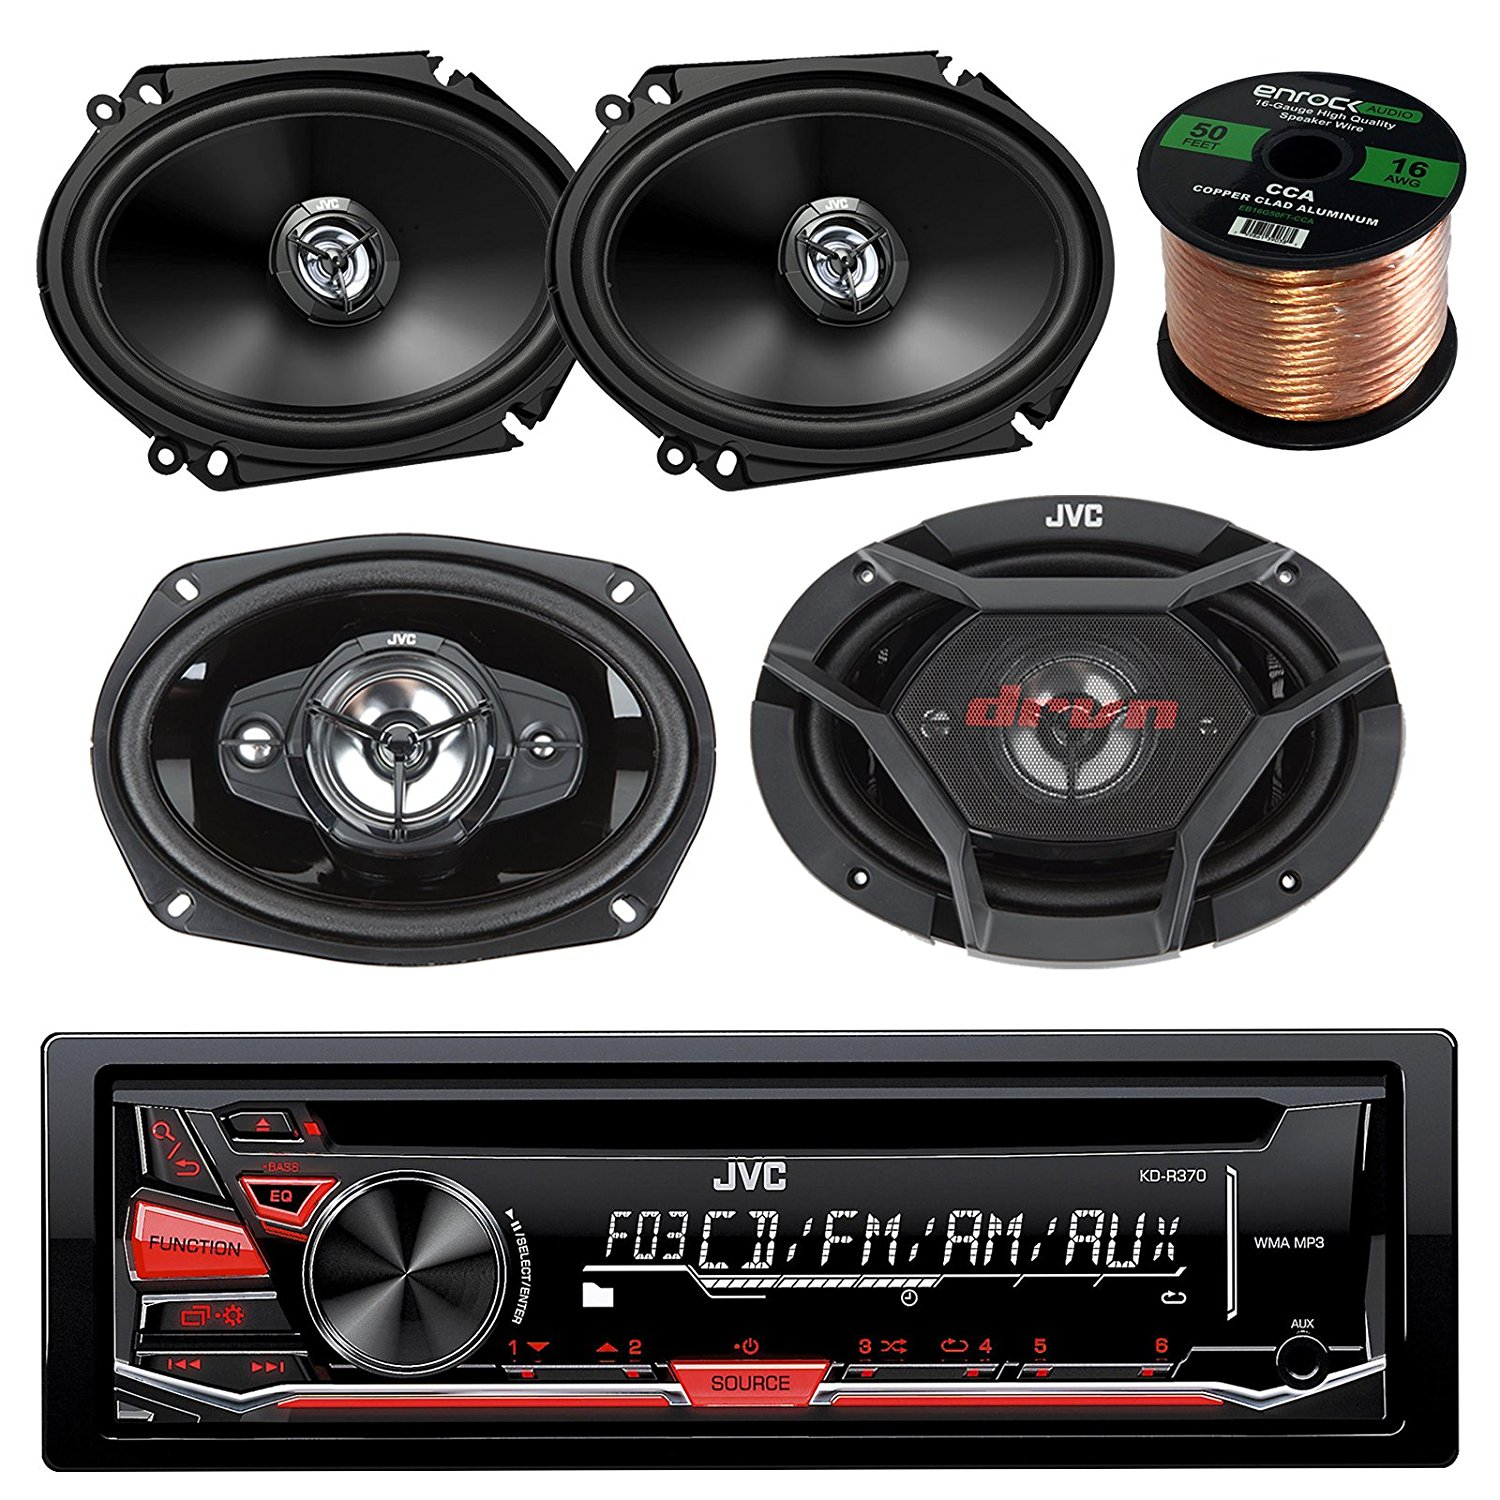 "JVC KD-R370 CD/MP3 AM/FM Radio Player Car Receiver Bundle Combo With 2x CS-DR6820 300-Watt 6x8"" Inch Vehicle Coaxial Speakers + 2x DR6930 6x9"" Inch 3-Way Audio Speakers + Enrock 50 Feet 16-Gauge Wire"